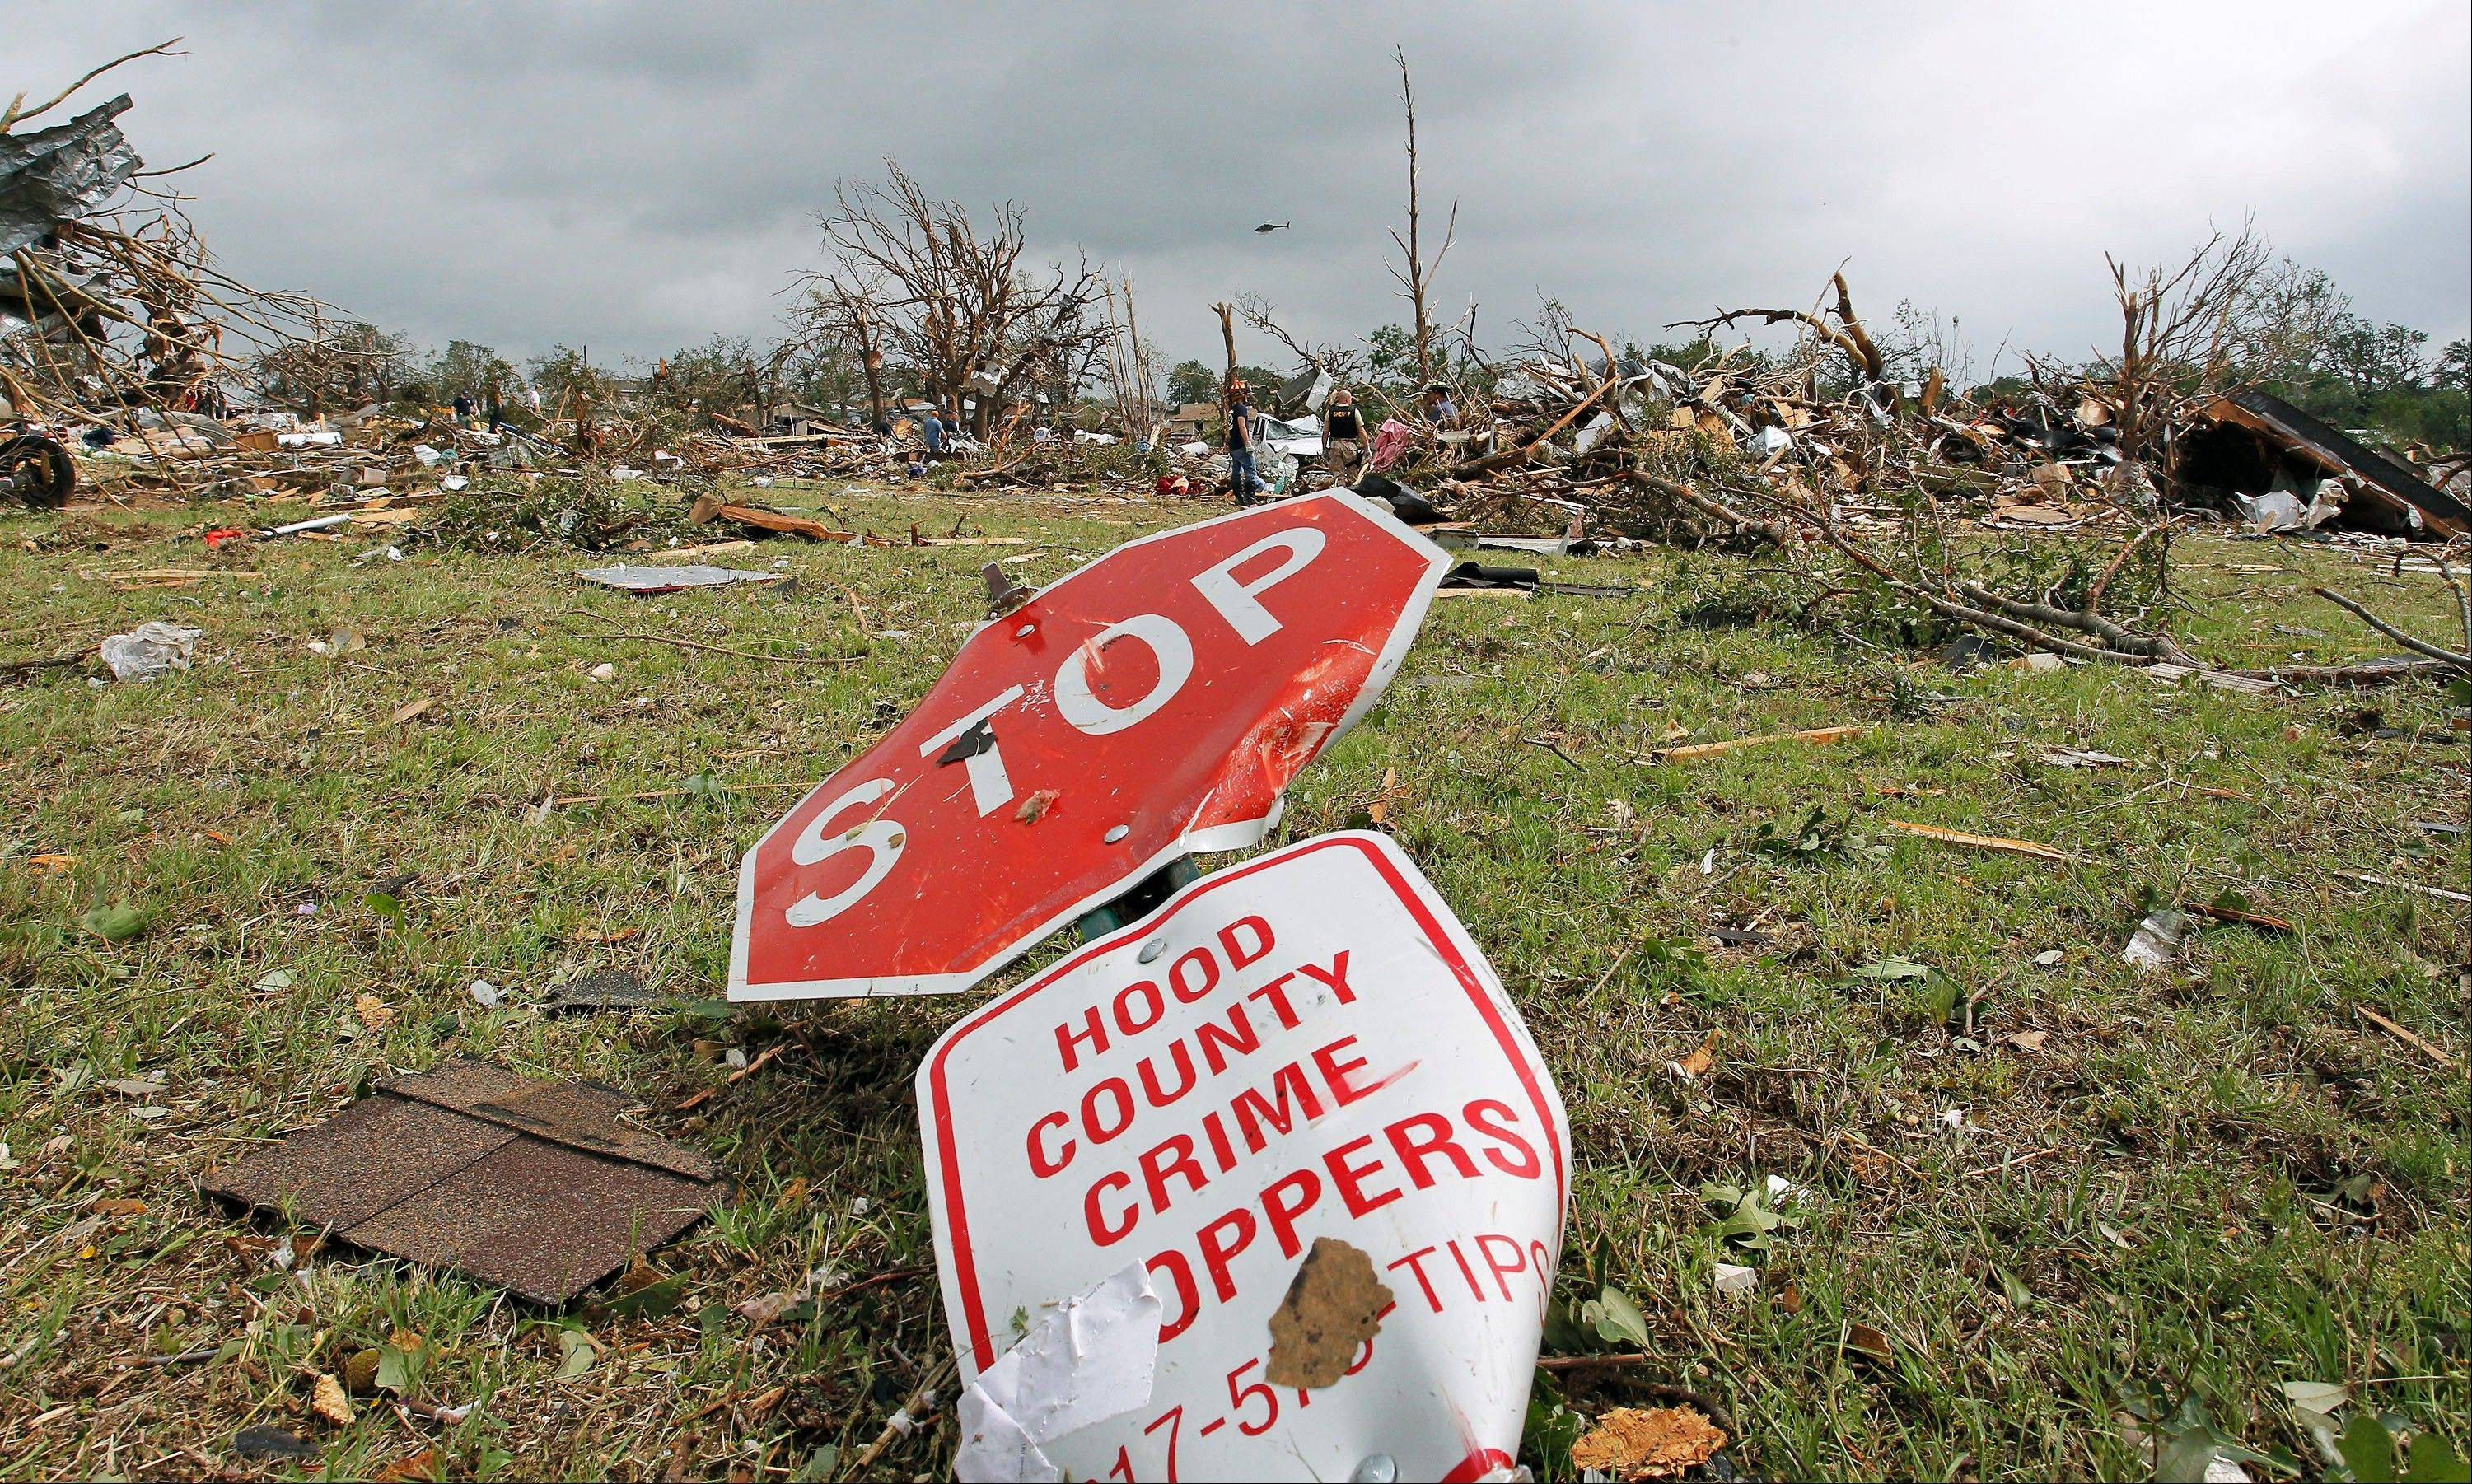 A toppled stop sign lies on the ground in the destroyed Rancho Brazos neighborhood of Granbury, Texas, Thursday, May 16, 2013. Ten tornadoes touched down in several small communities in North Texas overnight, leaving at least six people dead, dozens injured and hundreds homeless. Emergency responders were still searching for missing people Thursday afternoon.